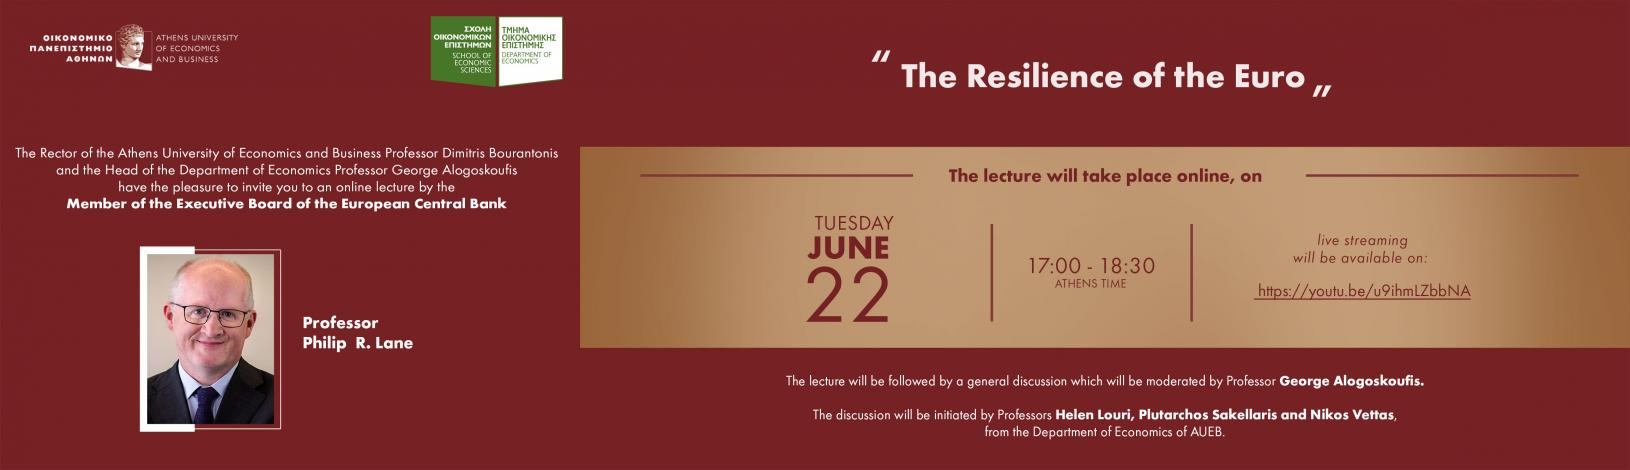 """""""The Resilience of the Euro"""", με τον Philip R. Lane22Ιουνίου 2021, 17:00 - 18:30"""